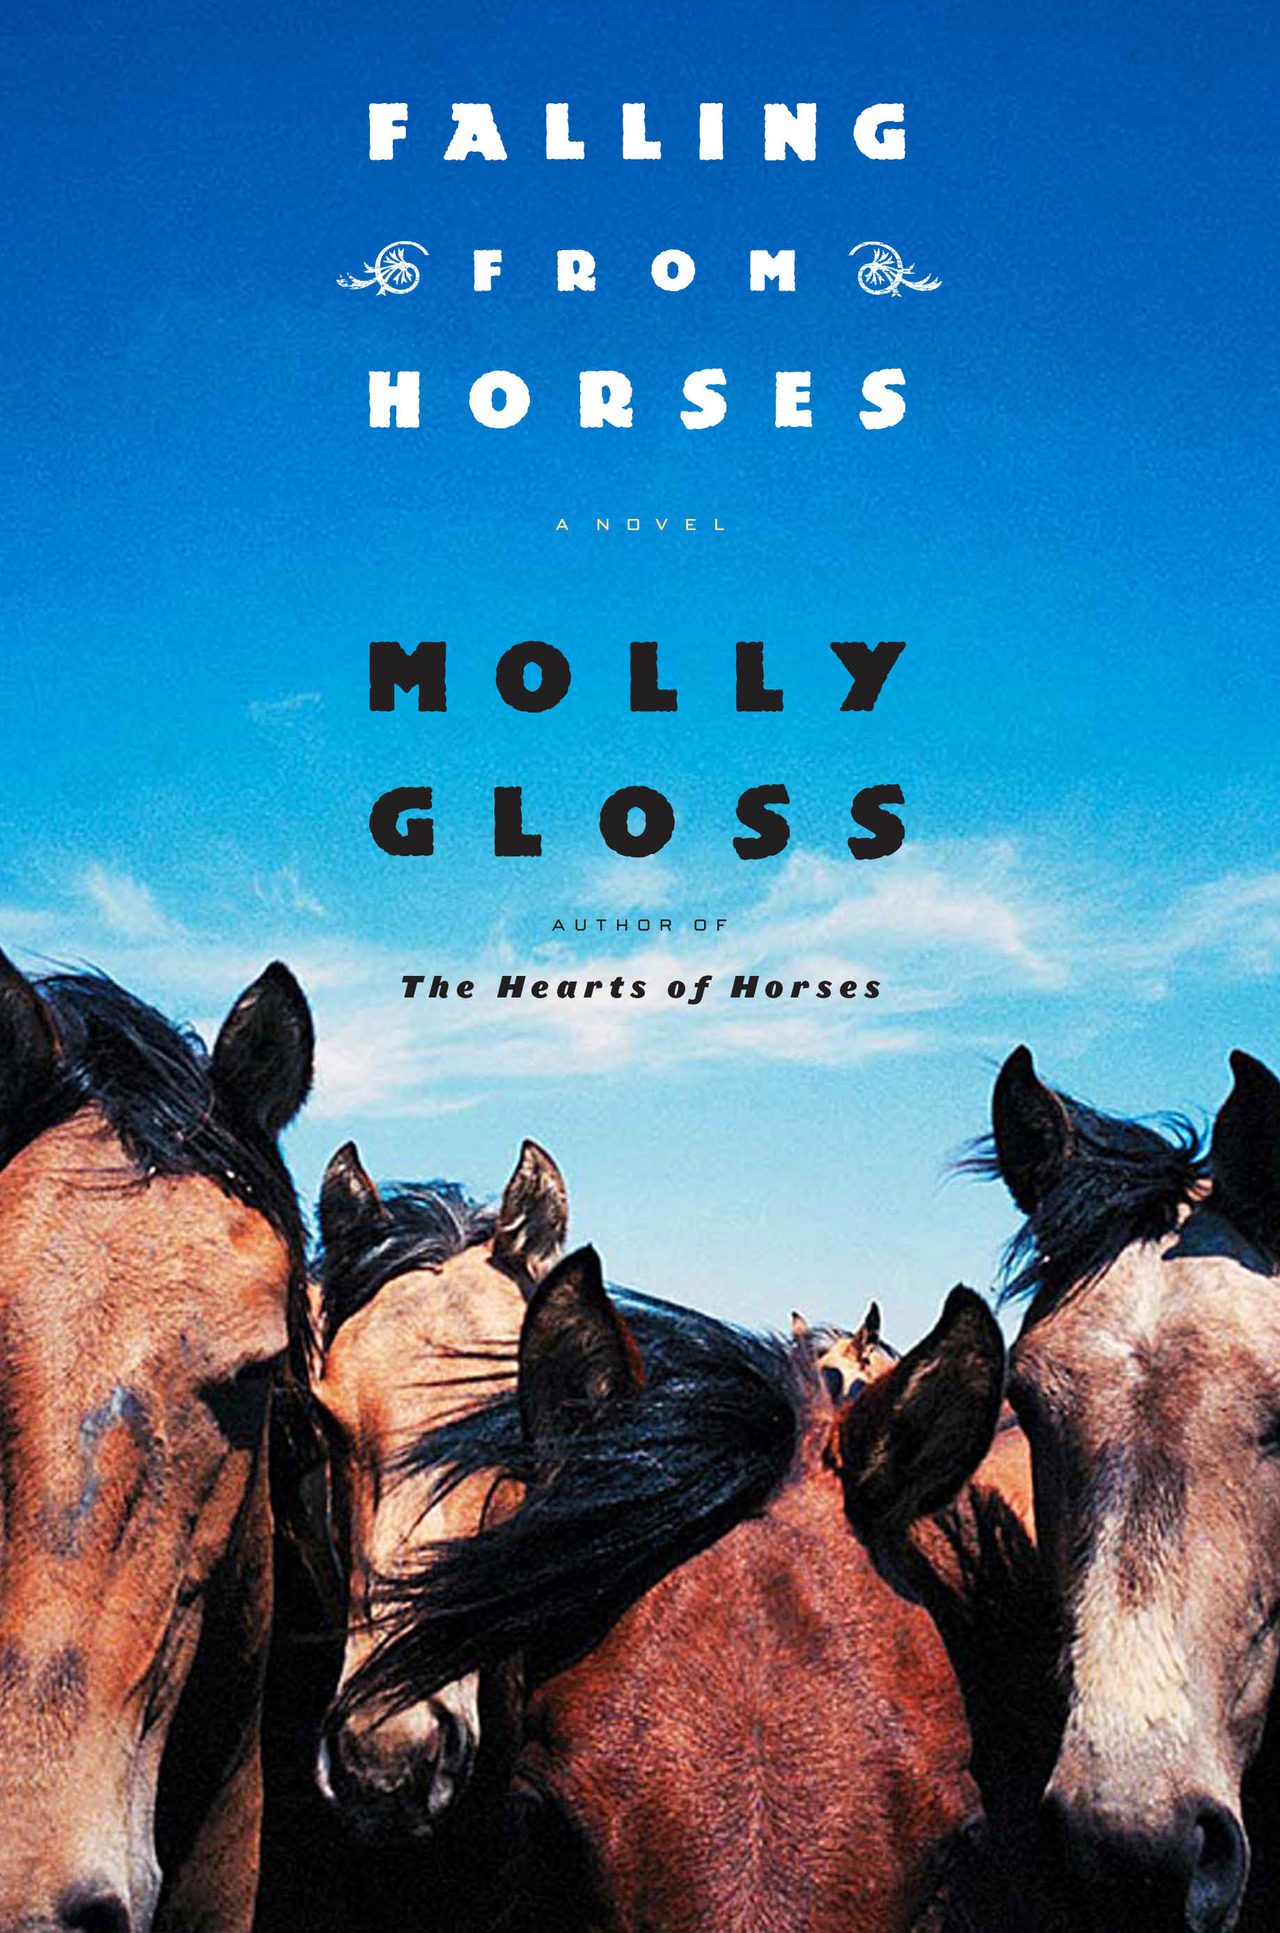 Gloss molly fallingfromhorses retouch